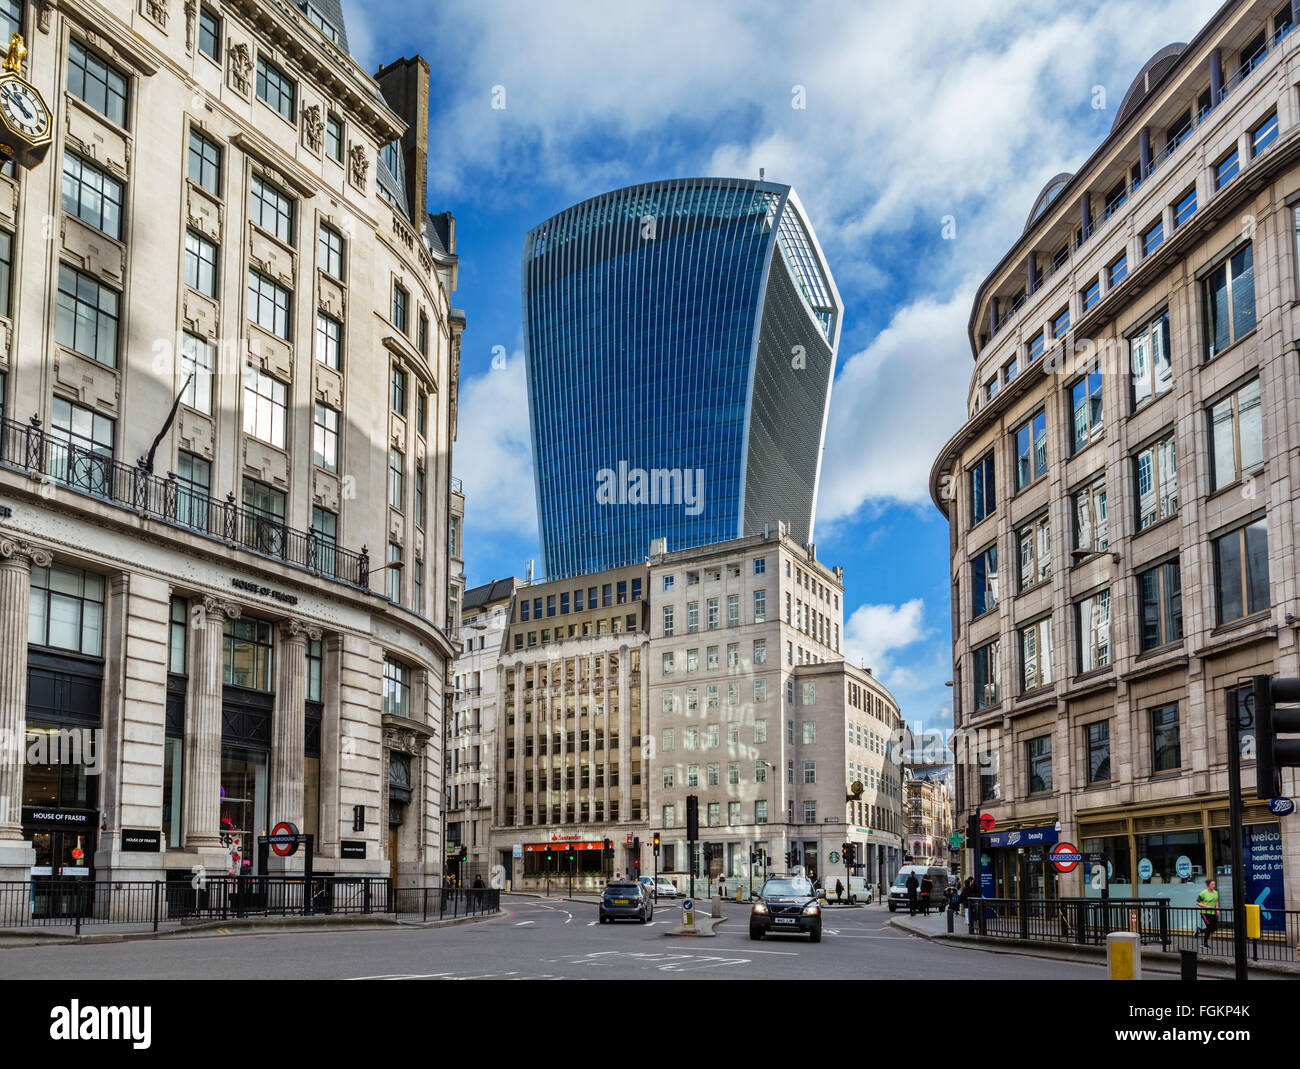 The City of London from King William St looking towards the Walkie Talkie Building (20 Fenchurch St), London, England, - Stock Image